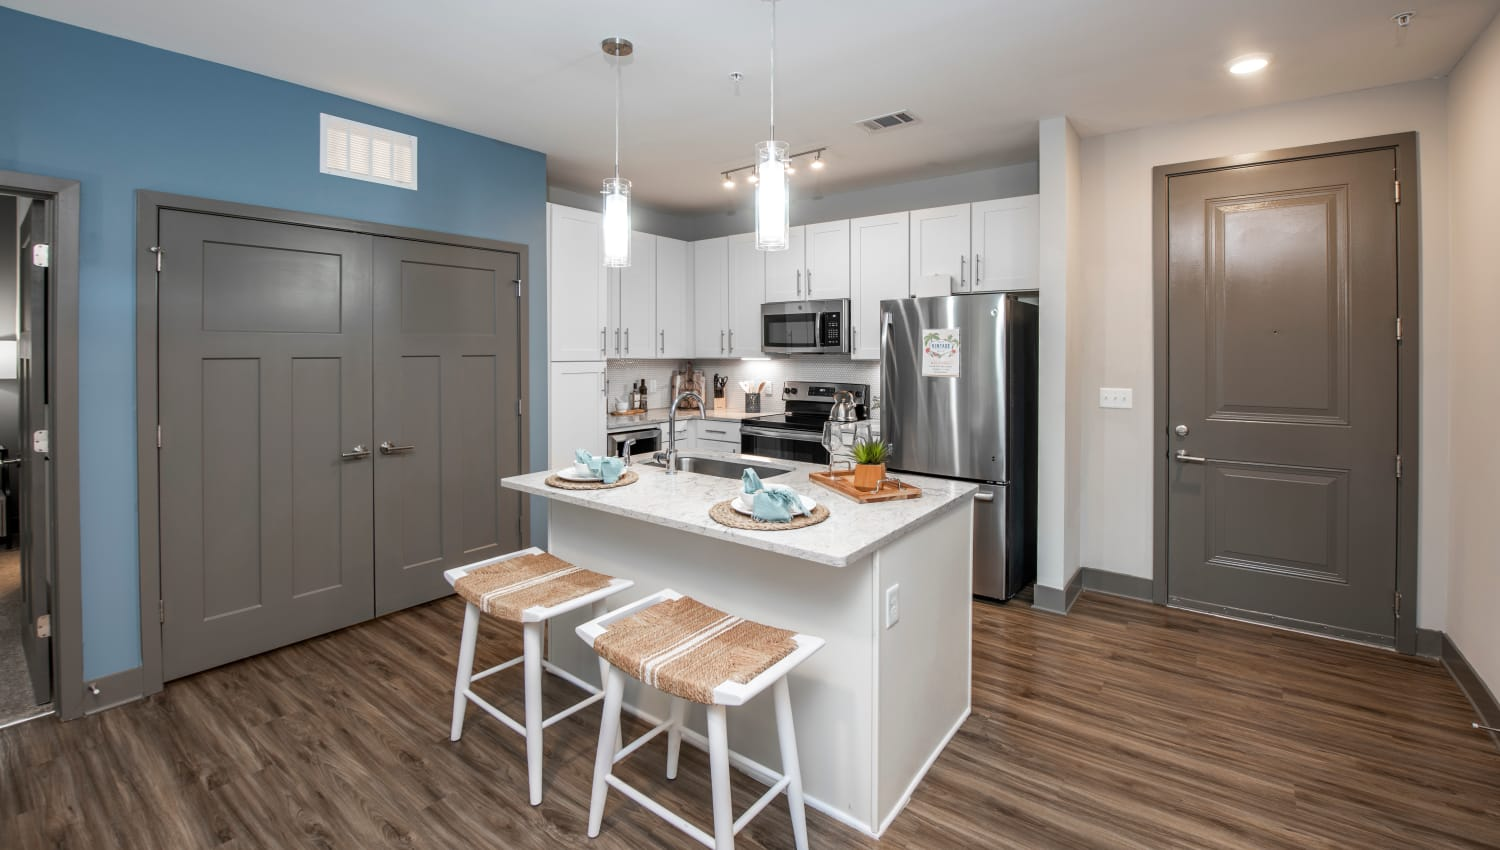 A spacious kitchen with white cabinetry at Olympus Emerald Coast in Destin, Florida